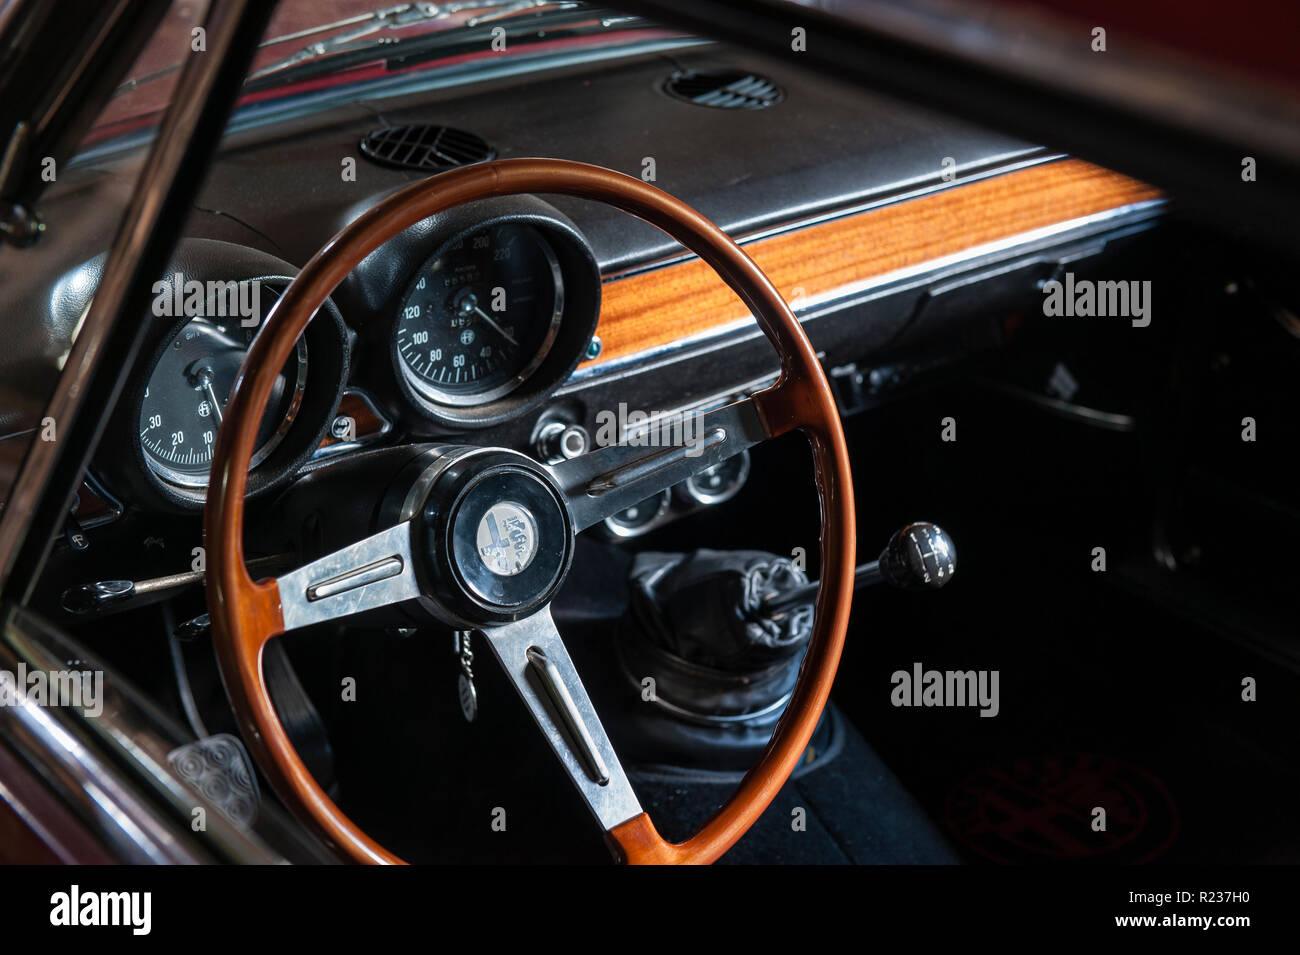 Steering Wheel Interior Alfa Romeo Stock Photos Gt Junior Classic Car Image